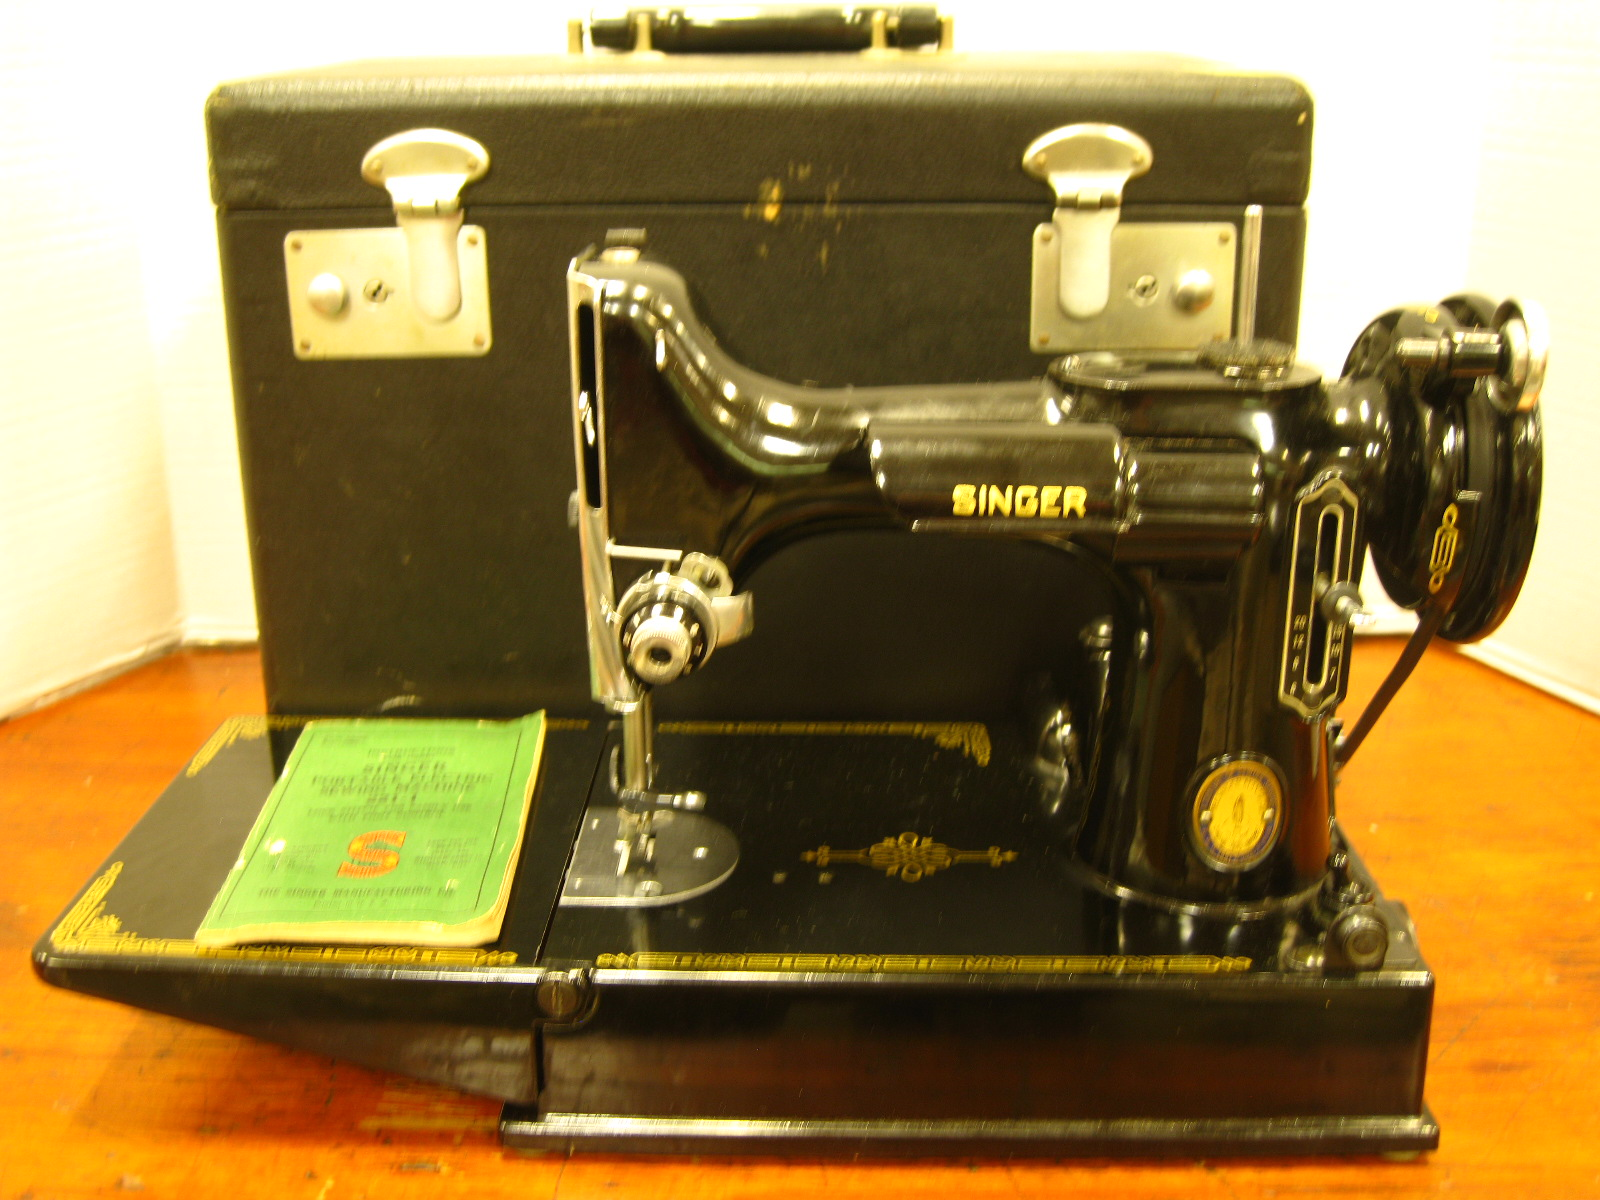 vintage singer featherweight sewing machine 221 1951 with. Black Bedroom Furniture Sets. Home Design Ideas